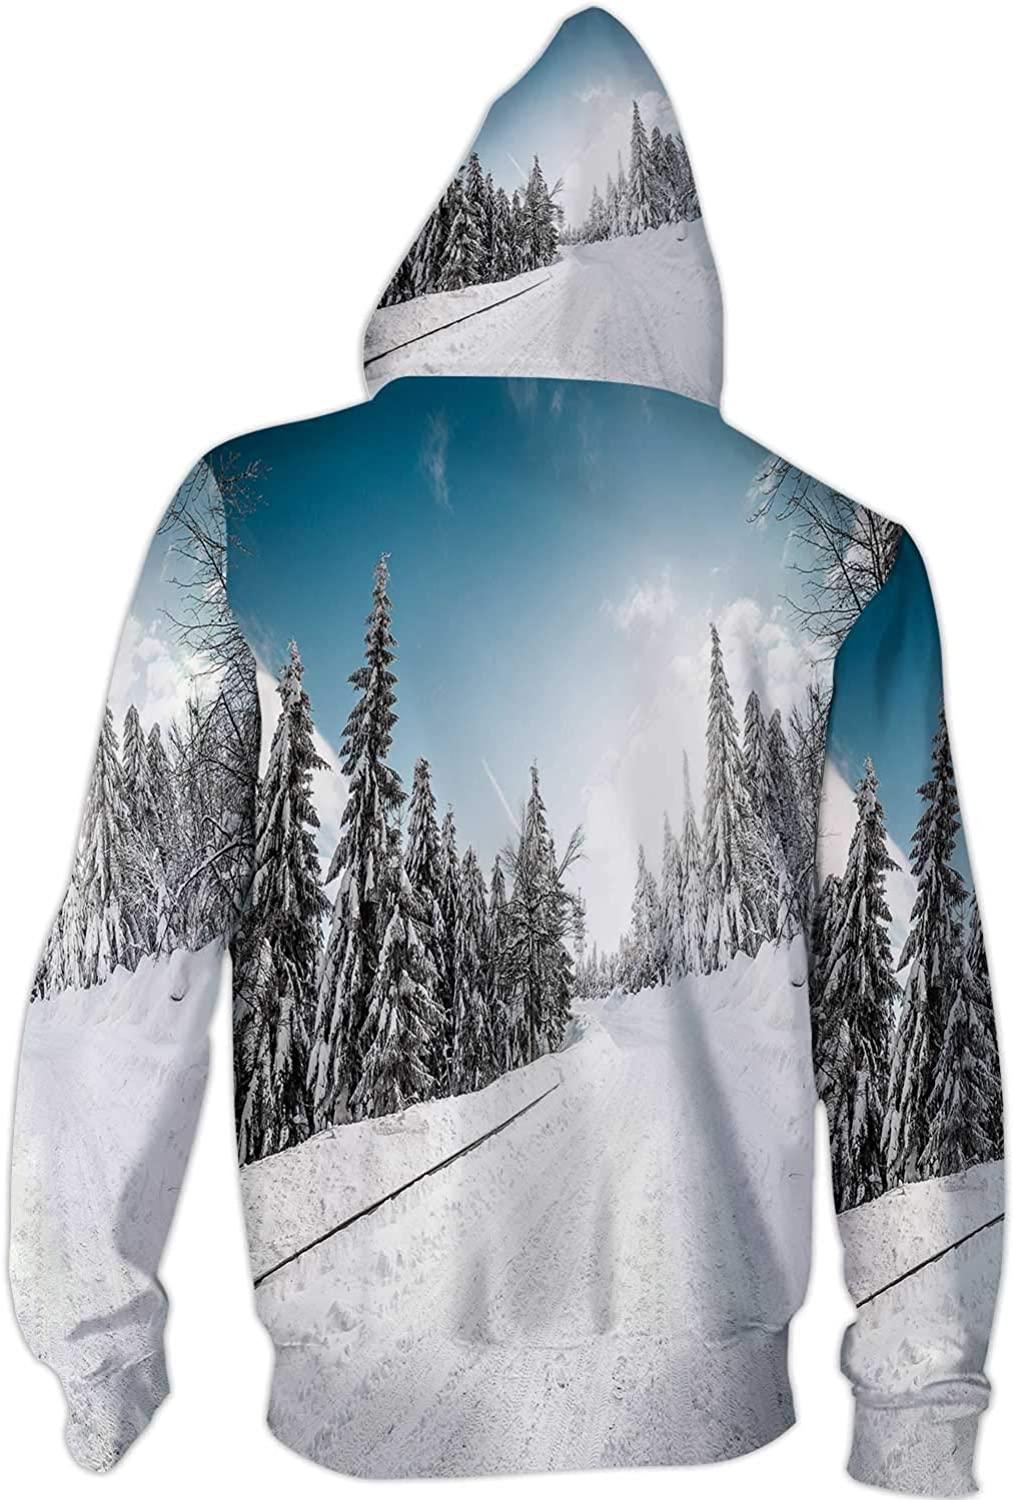 Line Structure Background Illustration Blueprint,Men//Womens Warm Outerwear Jackets and Hoodies China East Asia S